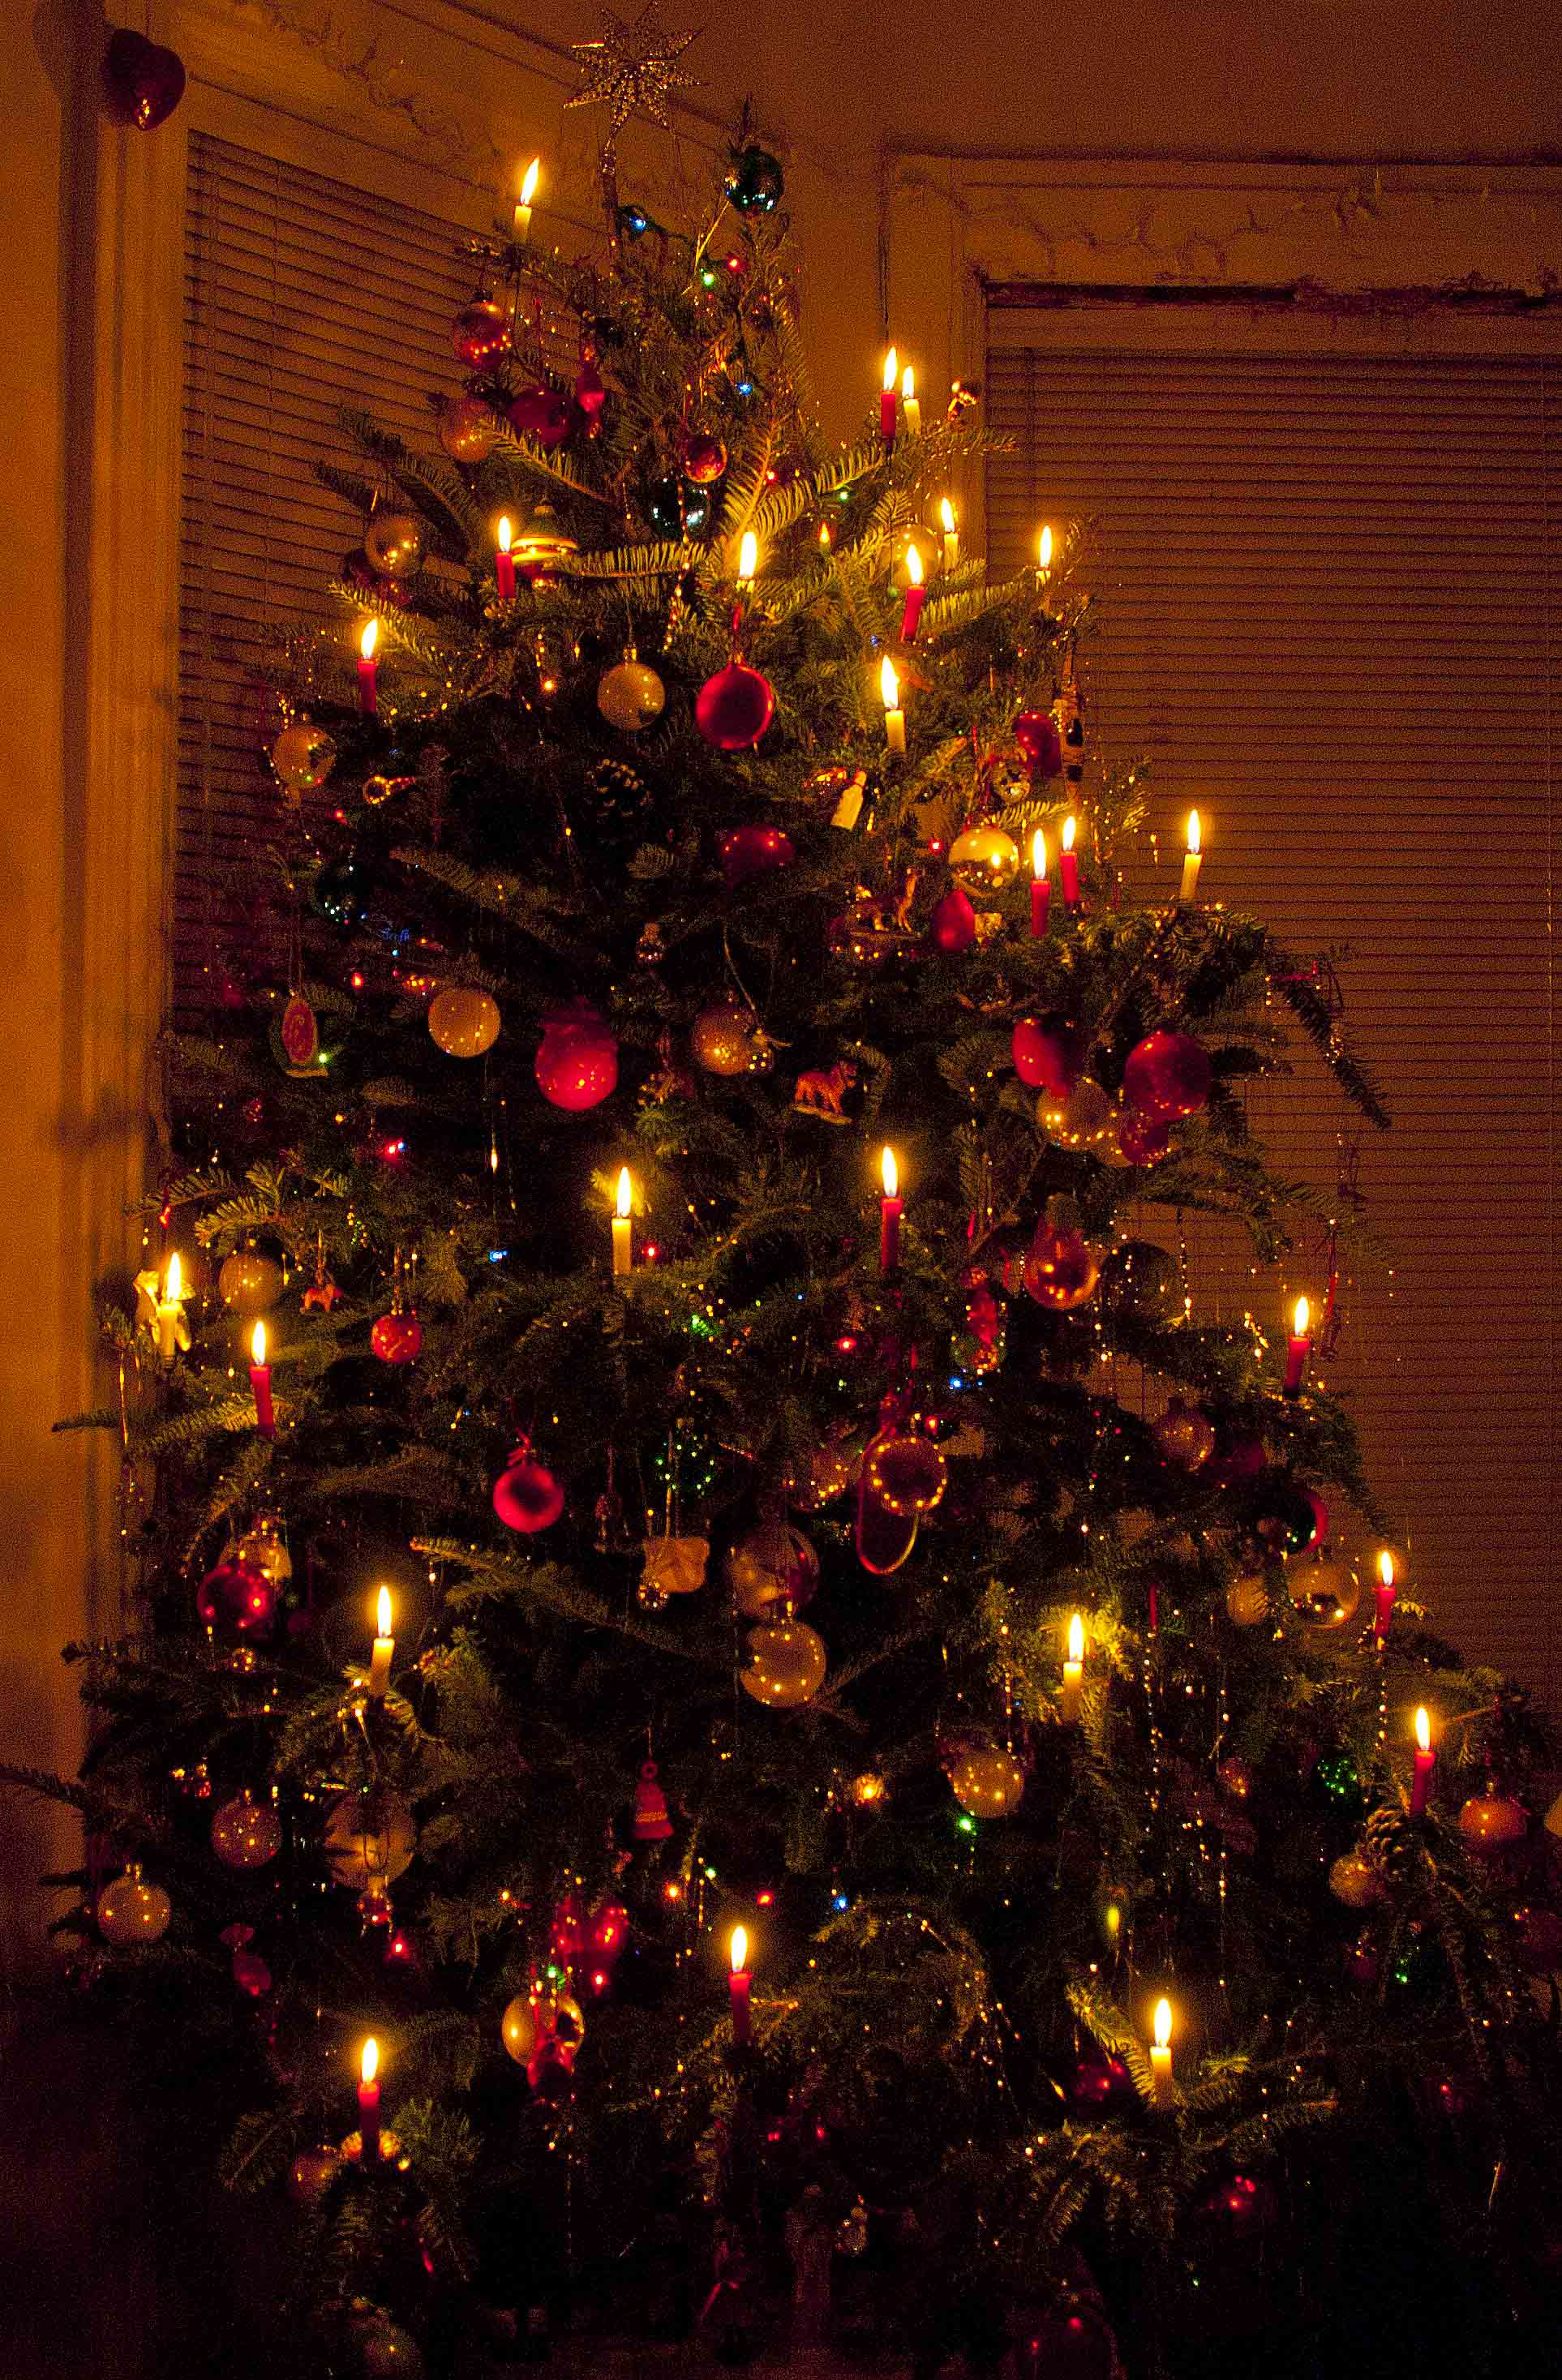 Christmas Tree Candles Wind Against Current